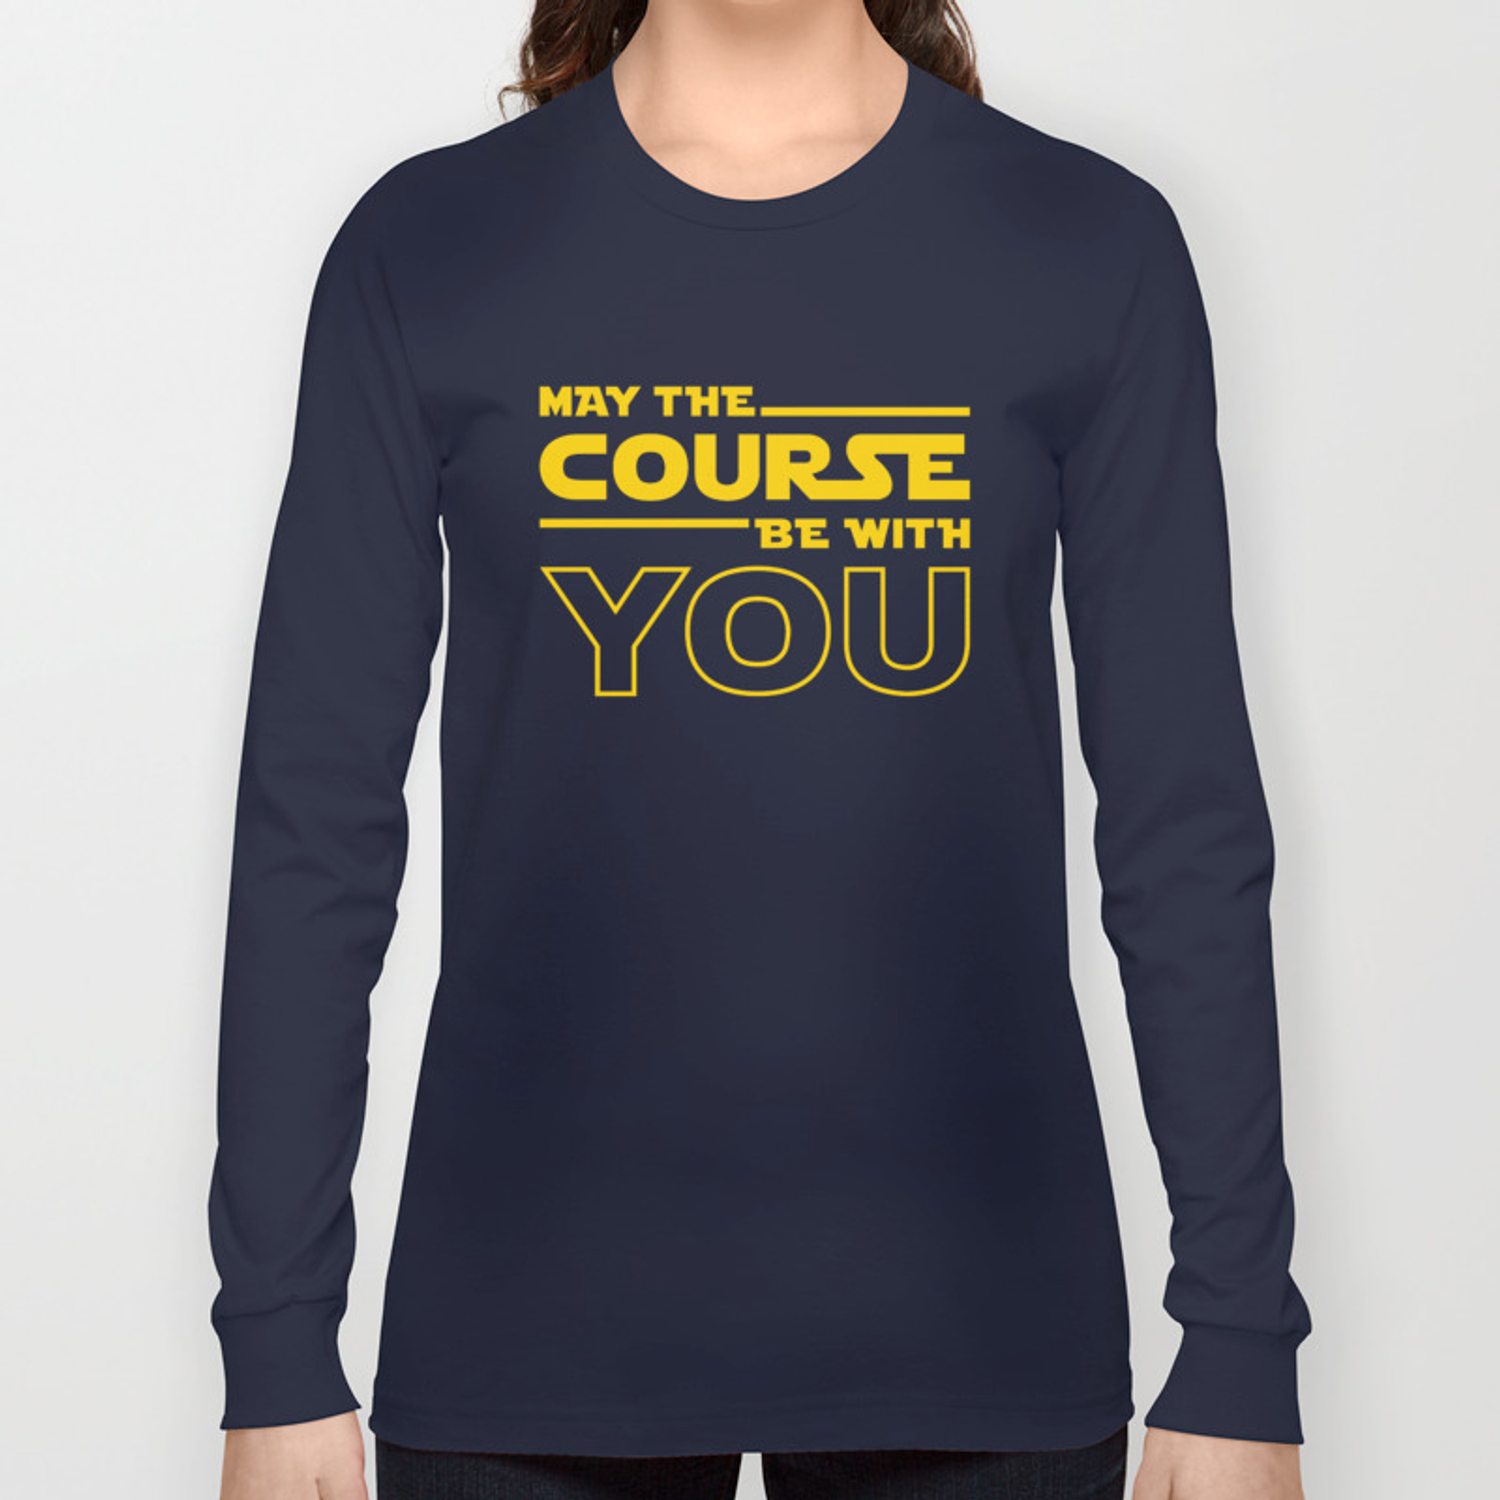 d92a9b97 May The Course Be With You Long Sleeve T-shirt by brogressproject ...